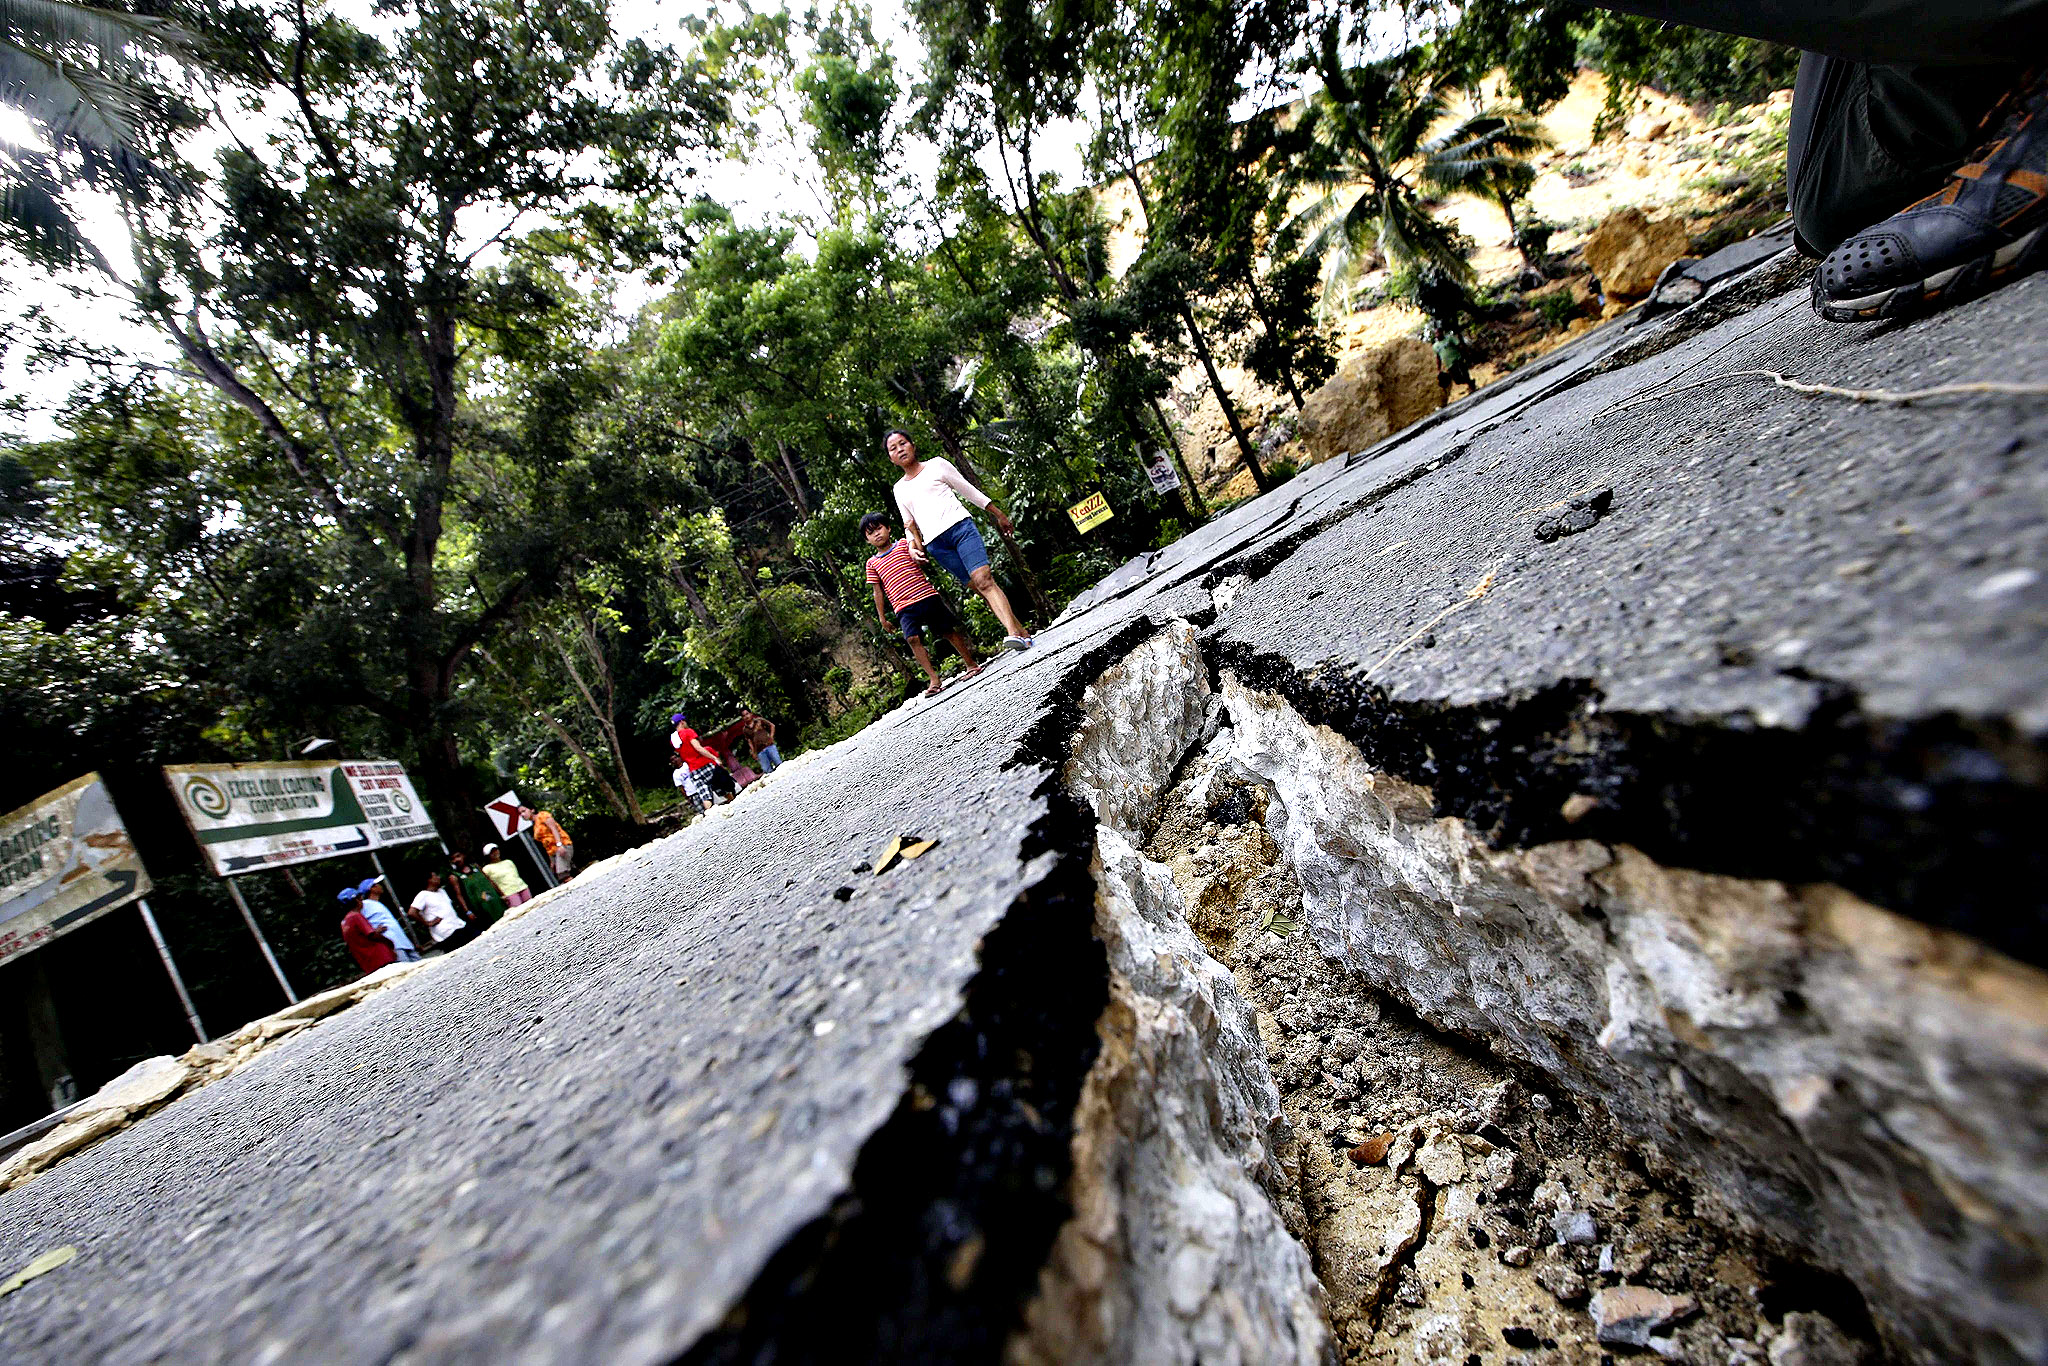 Filipinos walk along the road destroyed by a 7.2-magnitude earthquake  in Cortez  town, Bohol province, central Philippines, 16 October 2013. The death toll in a powerful earthquake in the Philippines has risen to 144, the national disaster risk management agency said 16 October.  At least 23 were reported missing and believed trapped in collapsed buildings in Bohol Province, 640 kilometres south of Manila, it added. Nearly 300 were injured in October 15  magnitude-7.2 tremor, the worst to hit the Philippines in two decades.